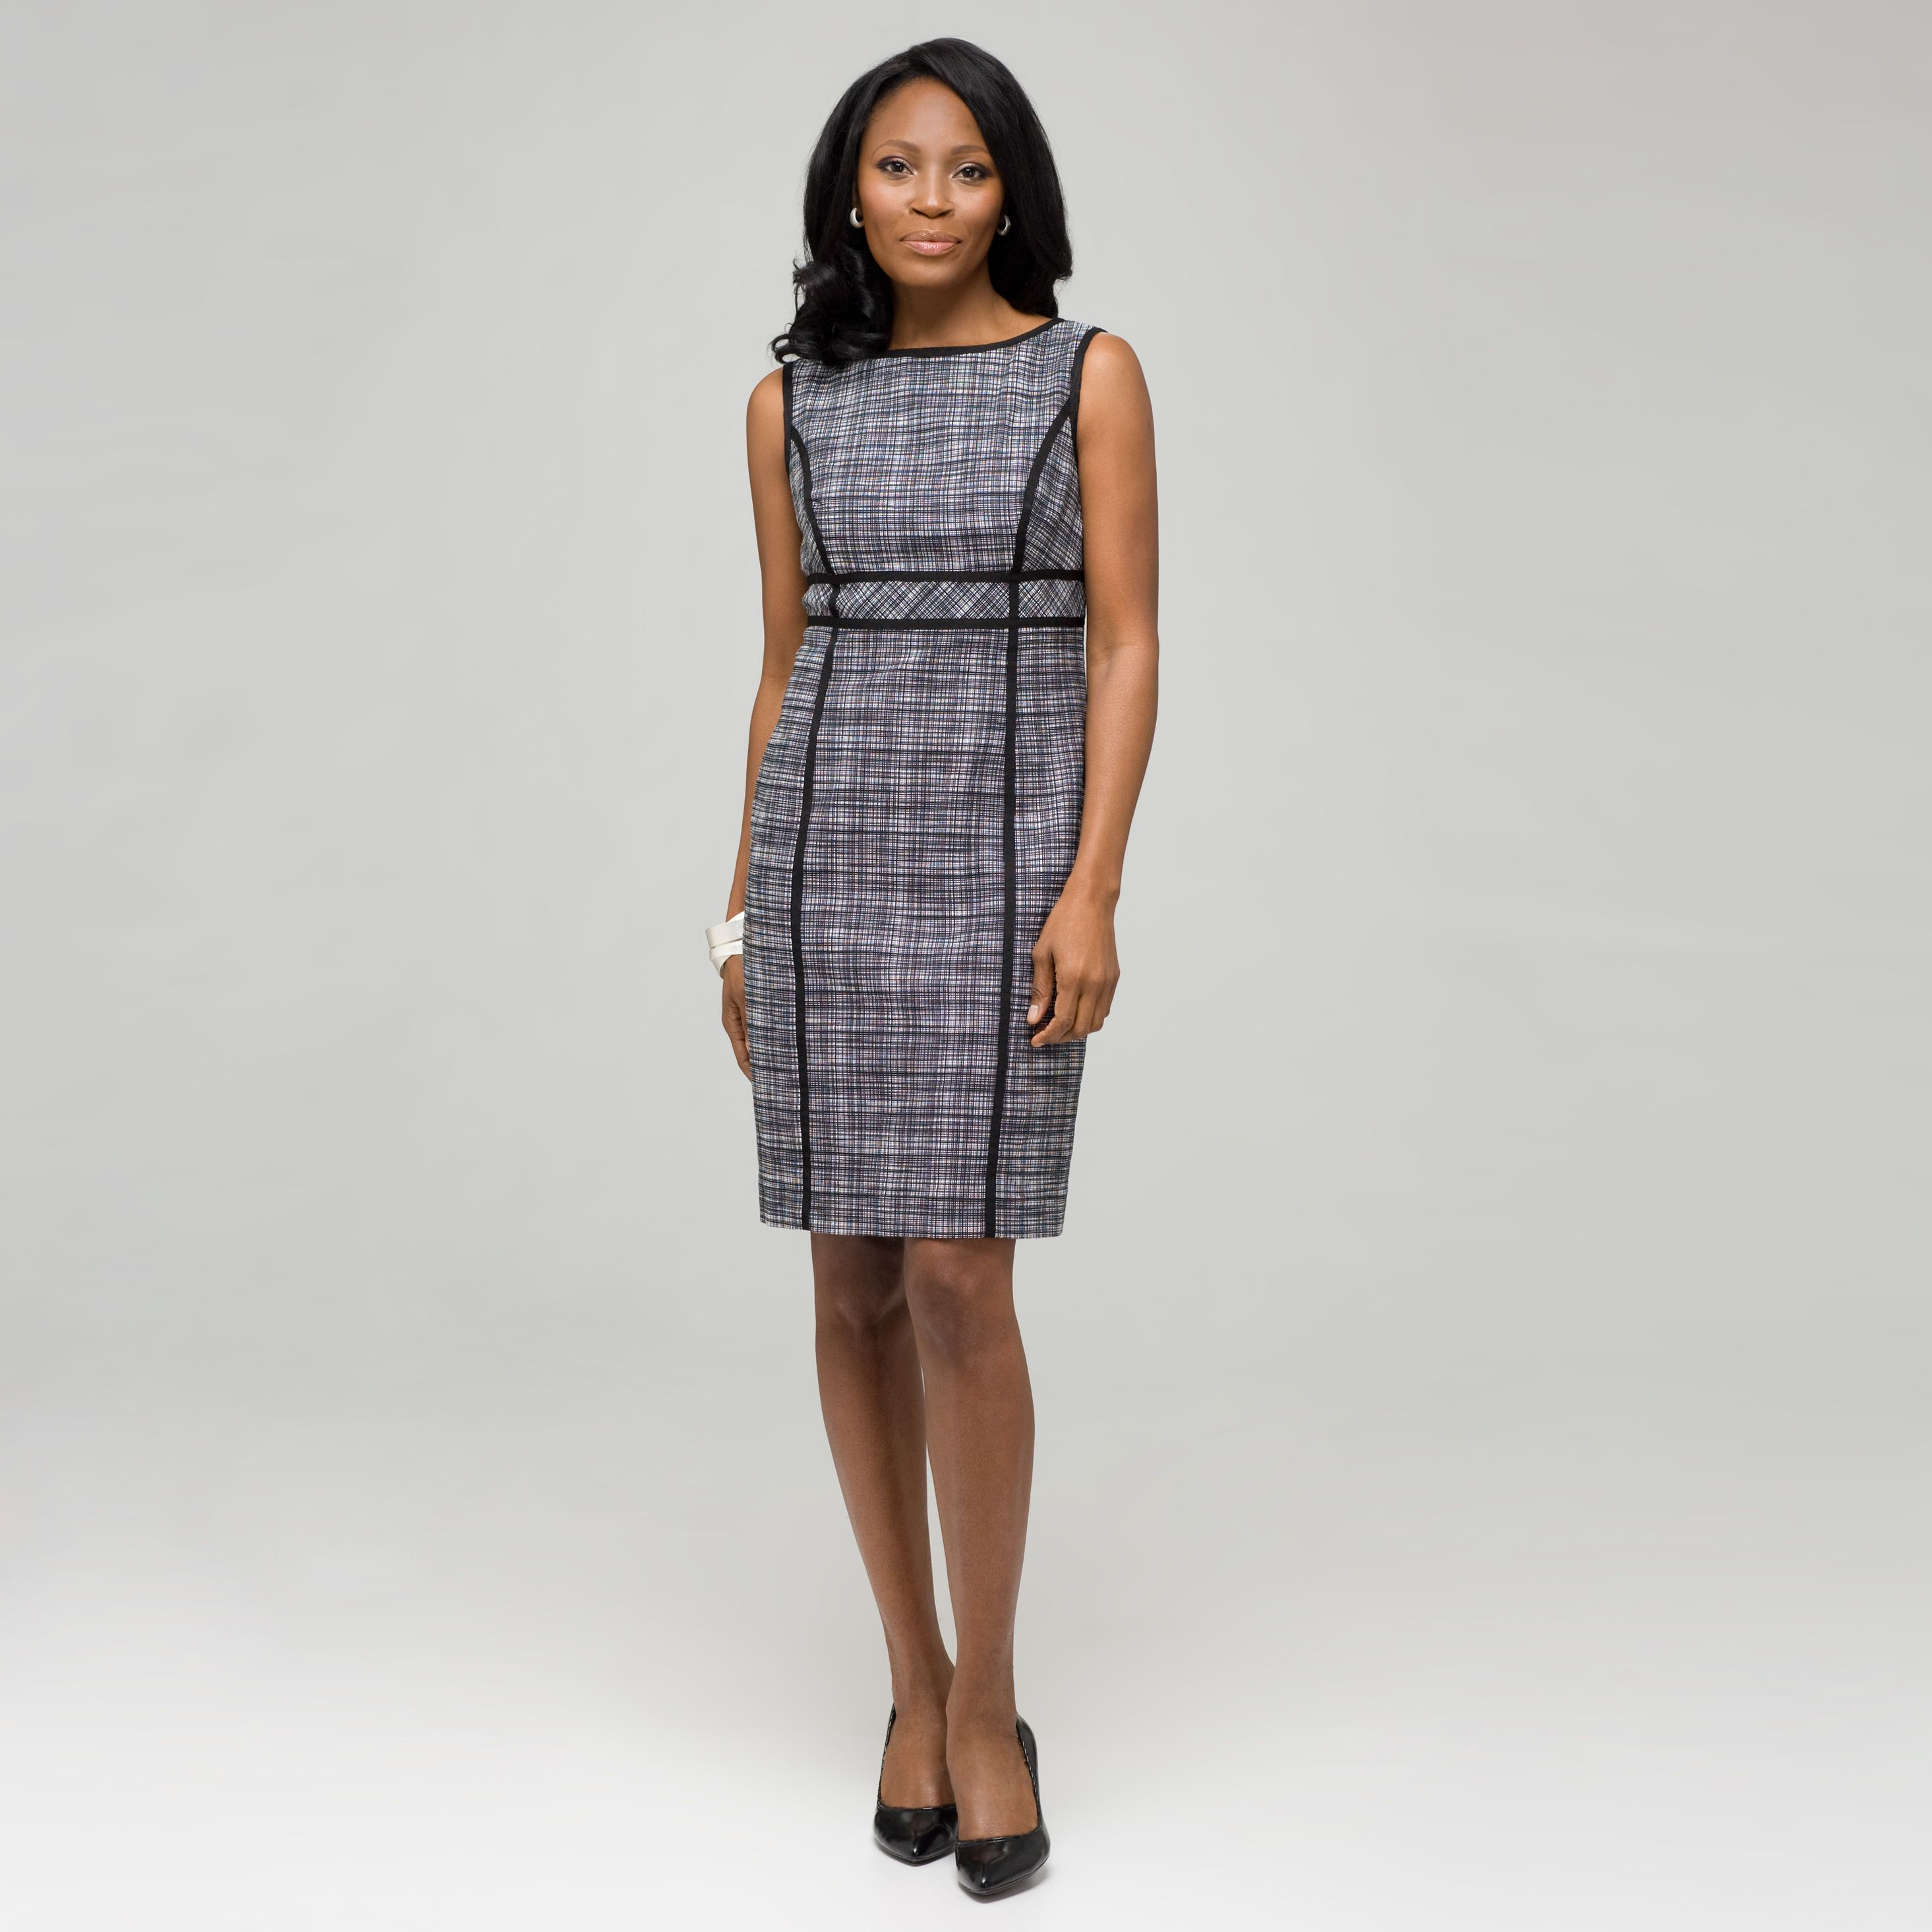 Top 10 Dress Styles for Women Over 50  3  EMPIRE WAIST A dress that has  empire waist tailoring is ultra comfortable and flattering. 790f2578c